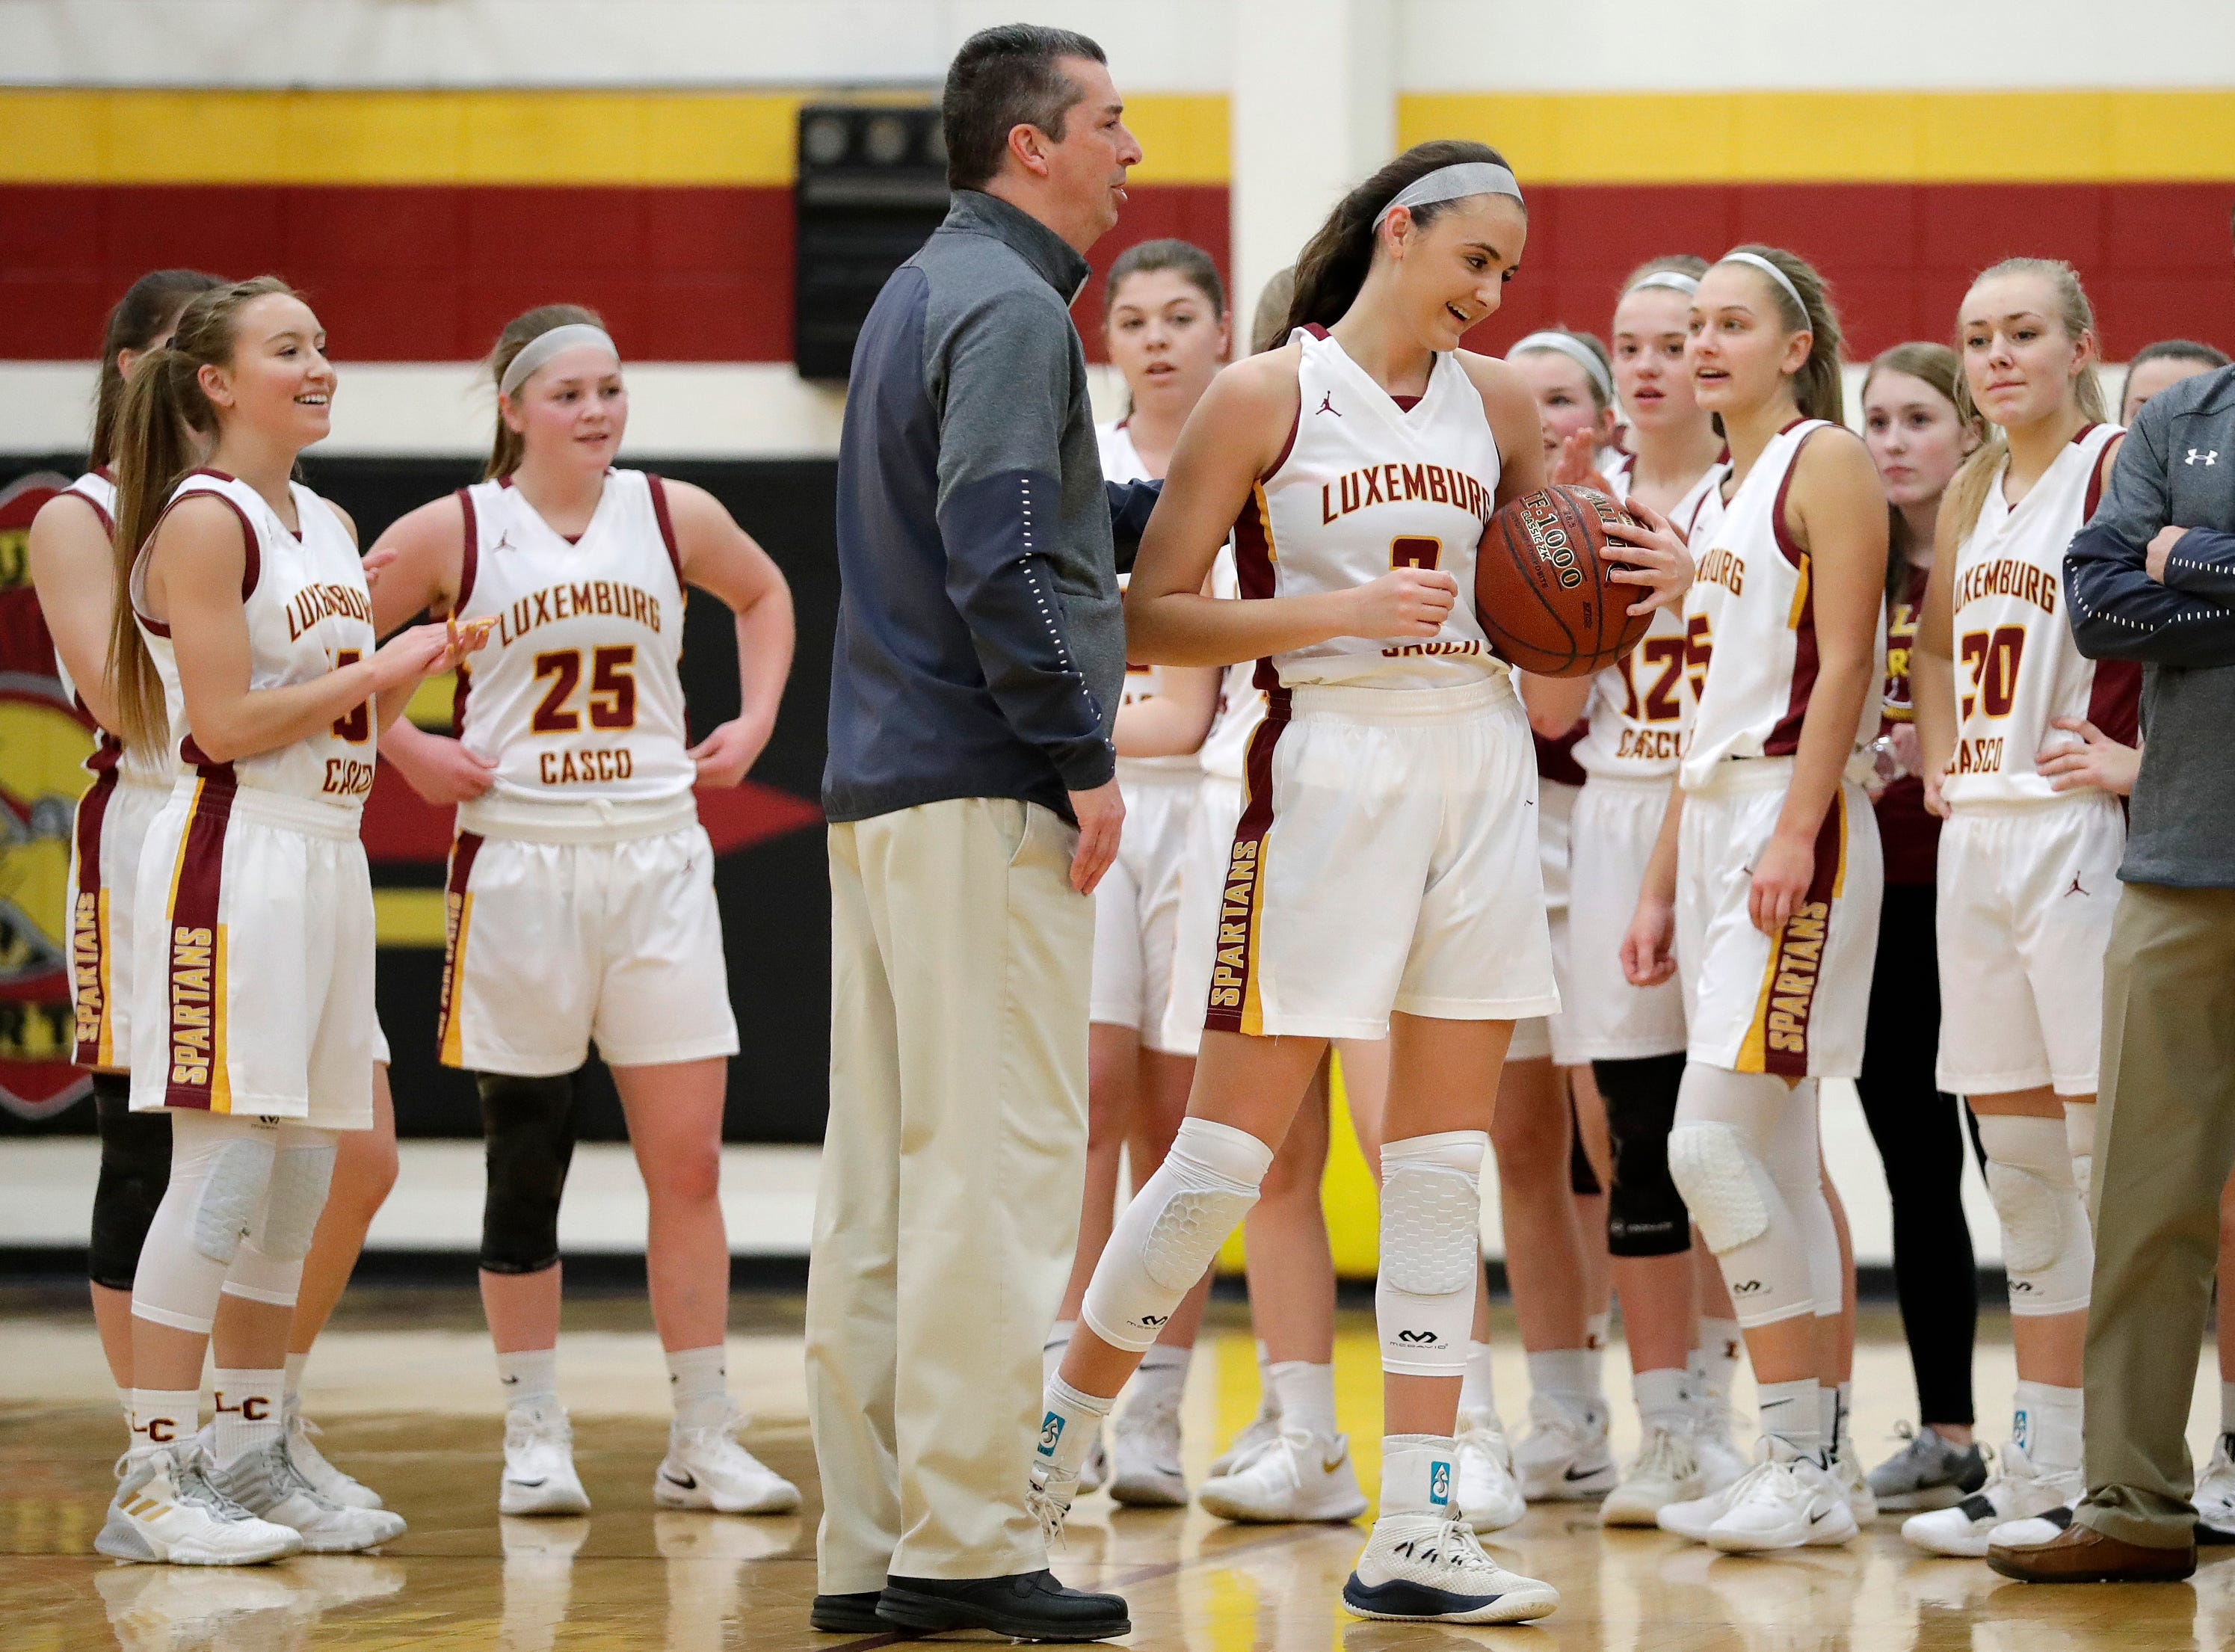 Luxemburg-Casco's Cassie Schiltz (3) is honored after breaking the school's all-time scoring record with her 1679th point in a girls basketball game against Waupaca at Luxemburg-Casco high school on Thursday, January 10, 2019 in Luxemburg, Wis. The record was previously set at 1678 by Rachel Porath in 2004.